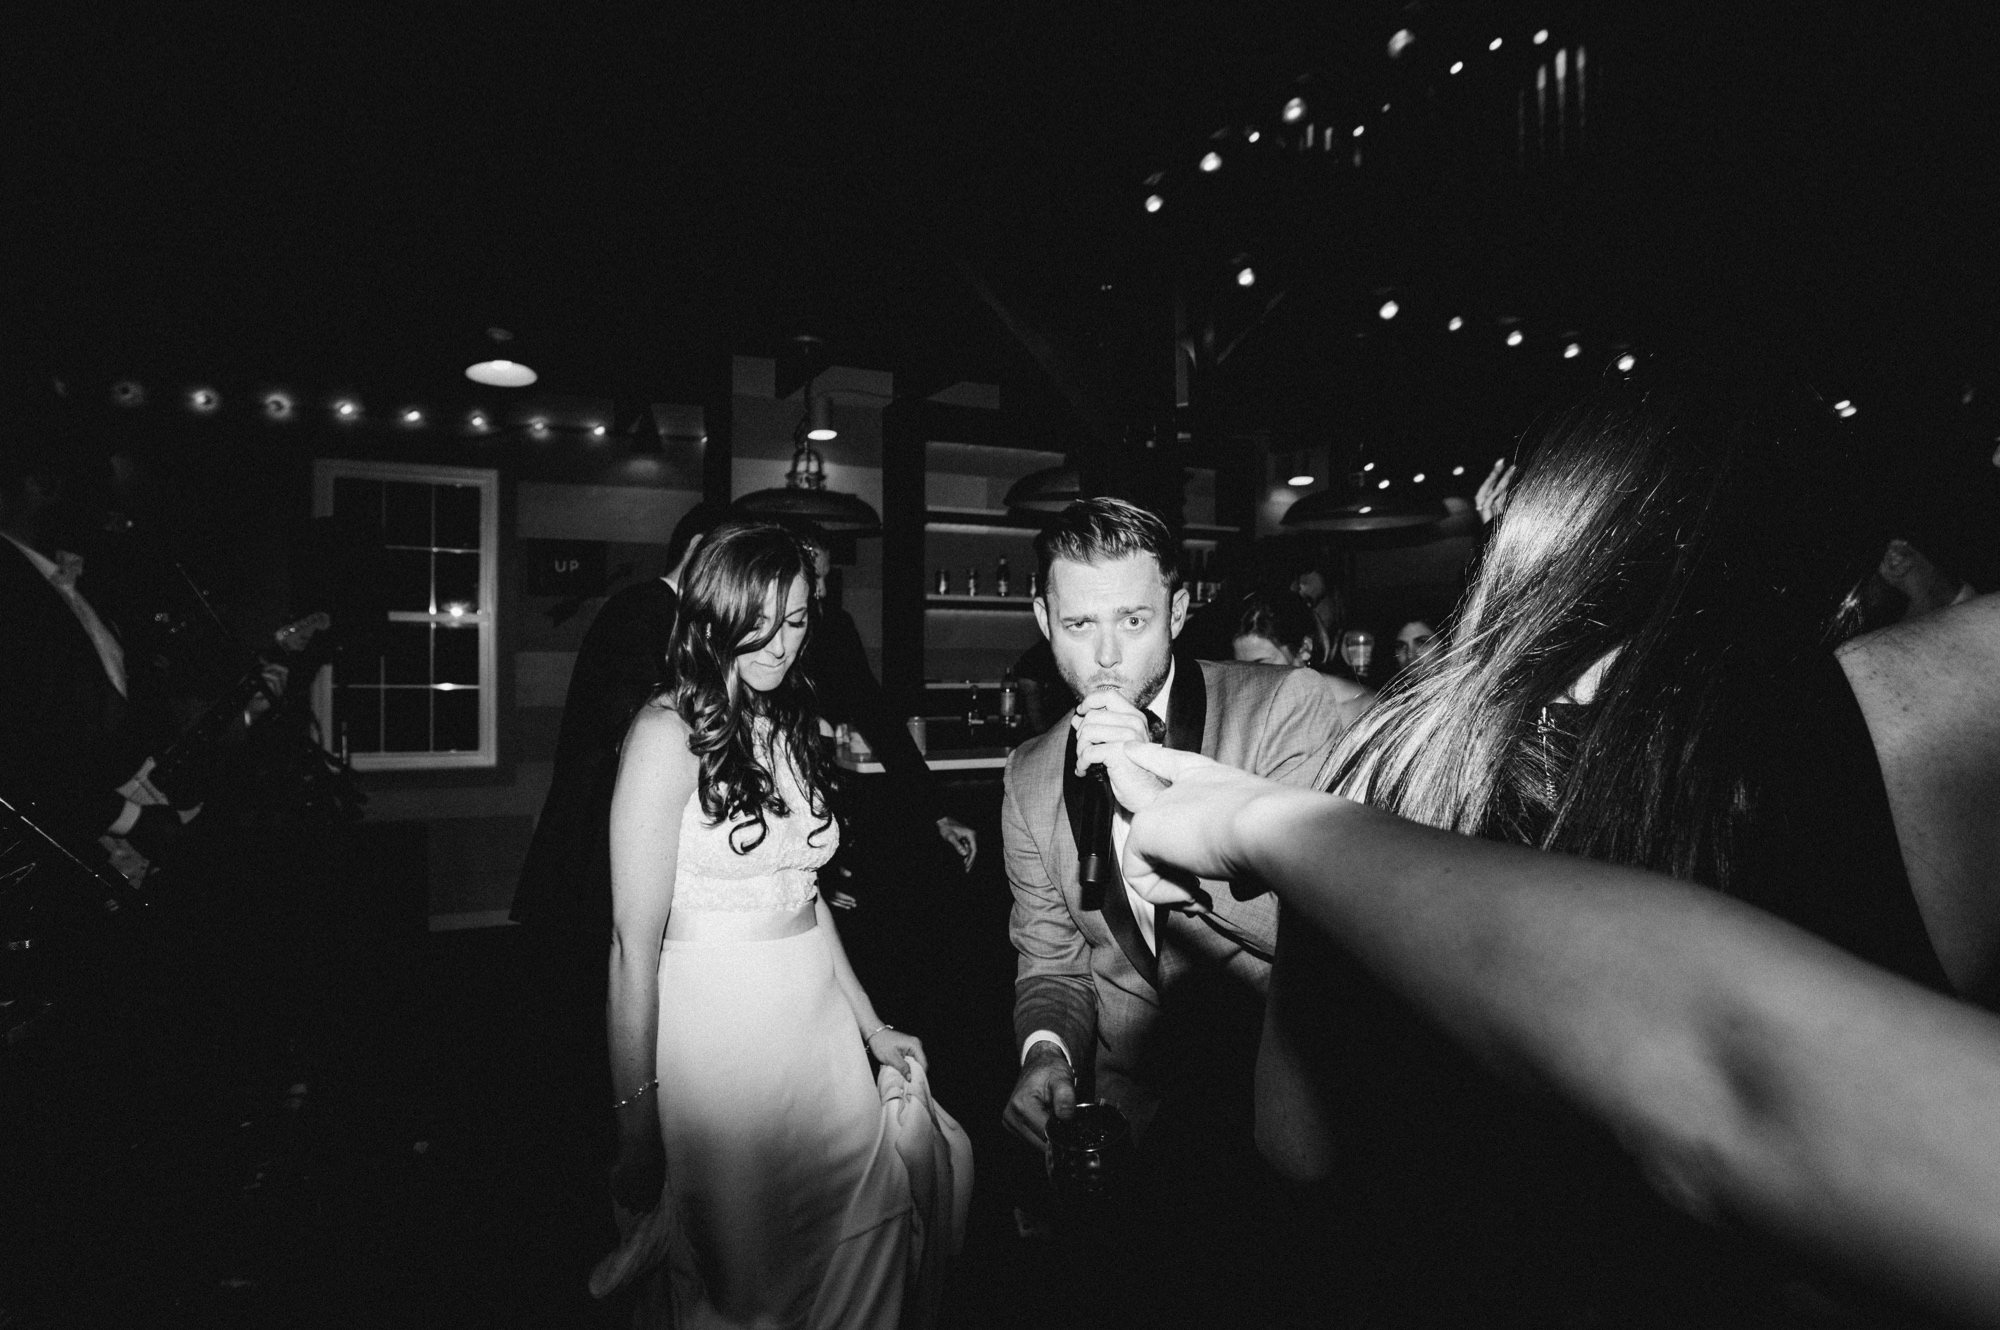 Dancing at First dance in The Carriage Barn at Roxbury Barn Estate in the Catskills New York